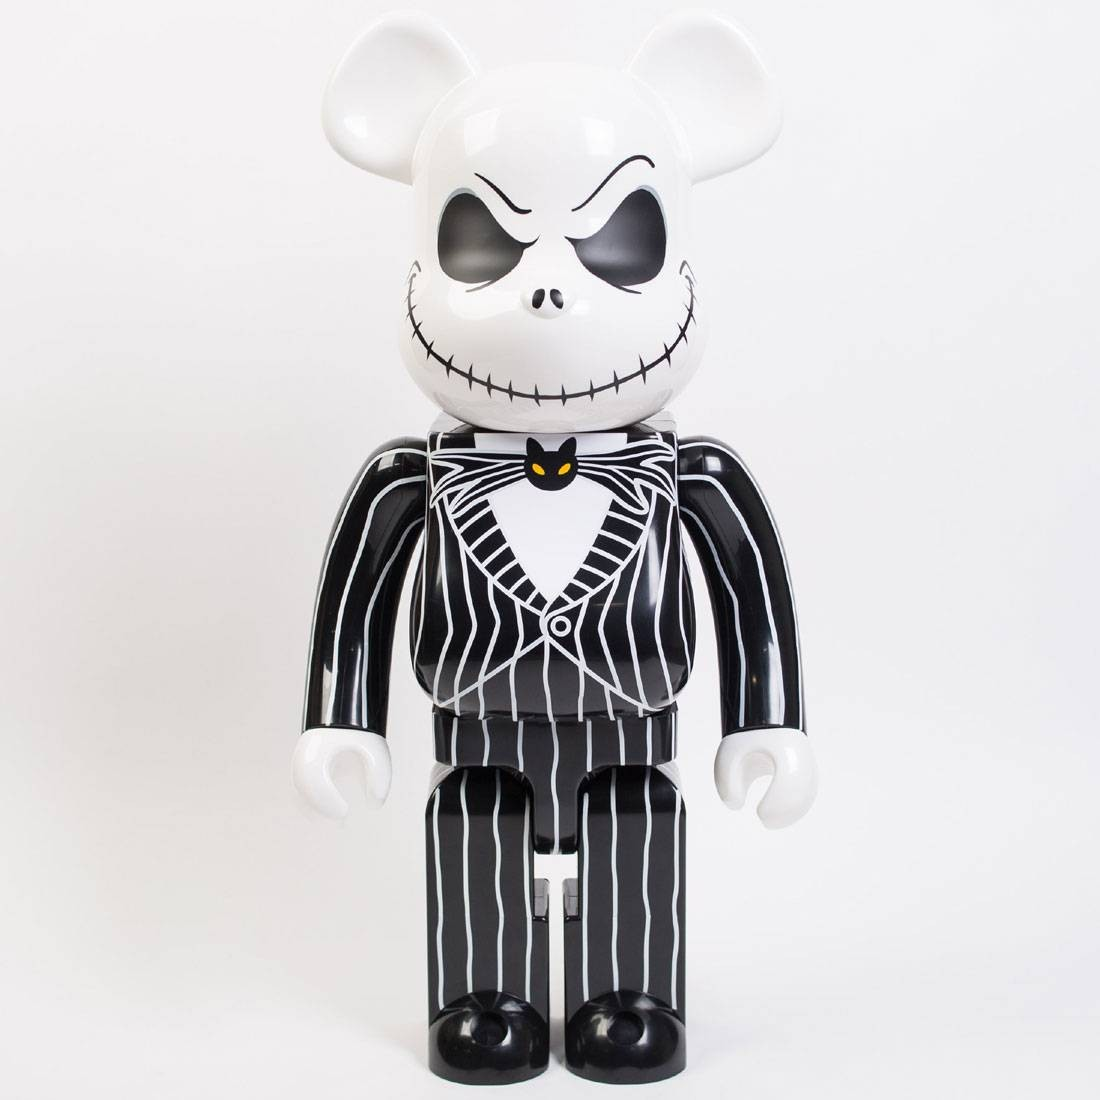 medicom the nightmare before christmas jack skellington 1000 bearbrick figure black - Christmas Jack Skellington